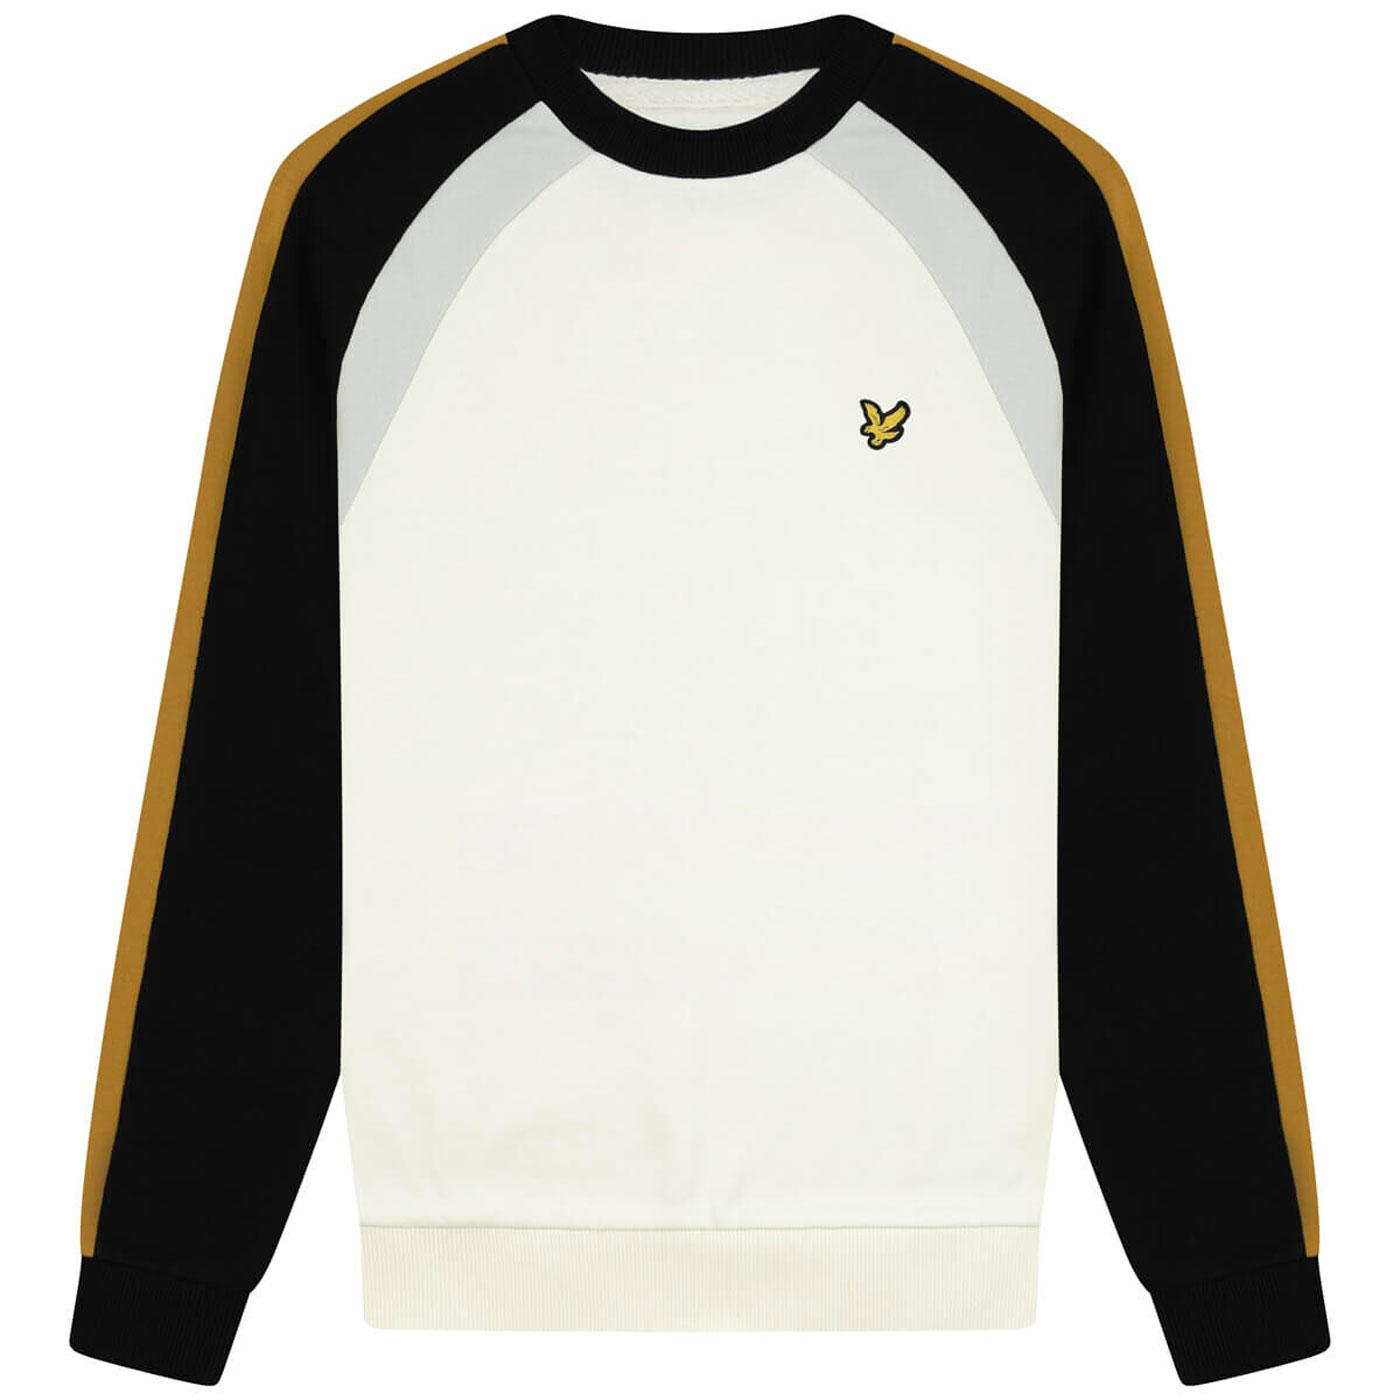 LYLE & SCOTT Retro 70s Vintage Sports Sweatshirt